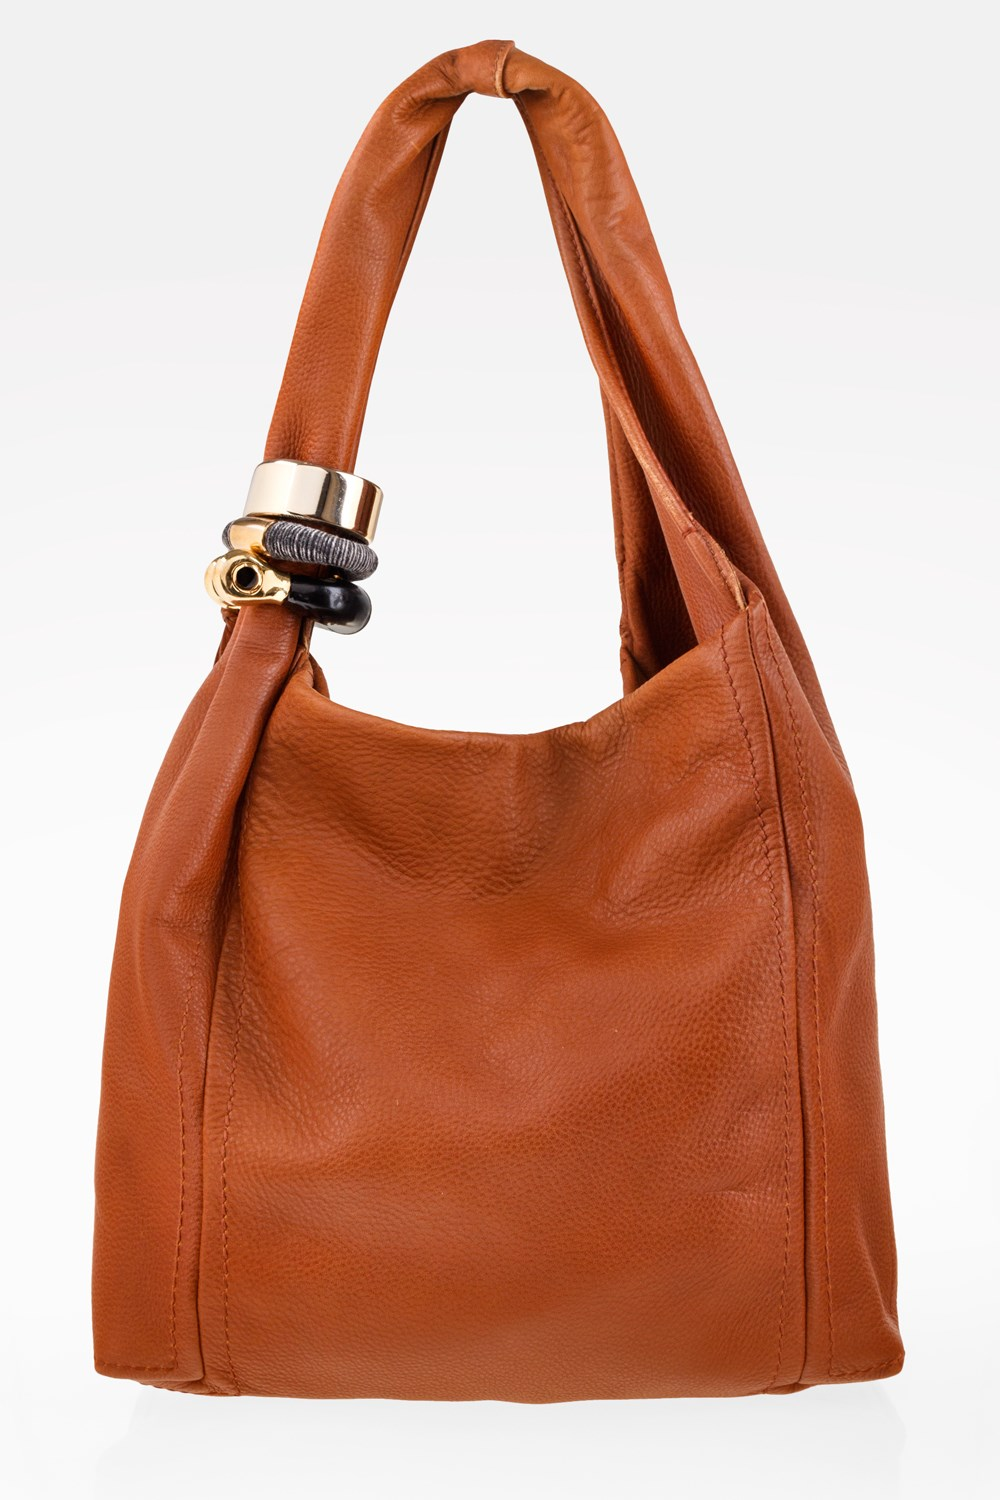 ad5e1f0c3d0 Tan Saba Large Leather Hobo Bag, Shoulder Bags, Buy Handbags, Bags,  Starbags Products, Starbags.gr